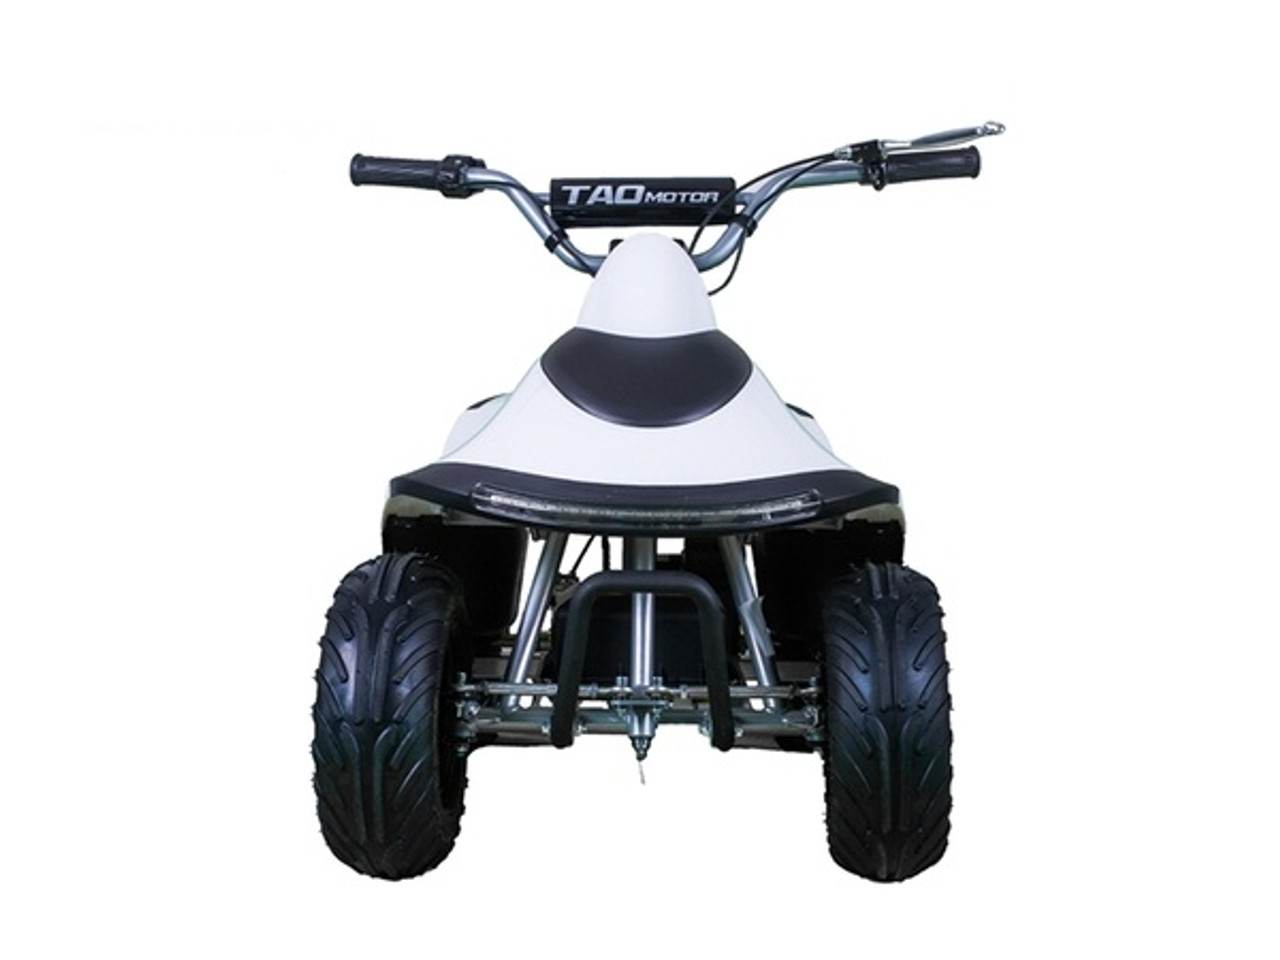 TaoTao ROVER350 350 Watt ATV, Brush Electric Motor